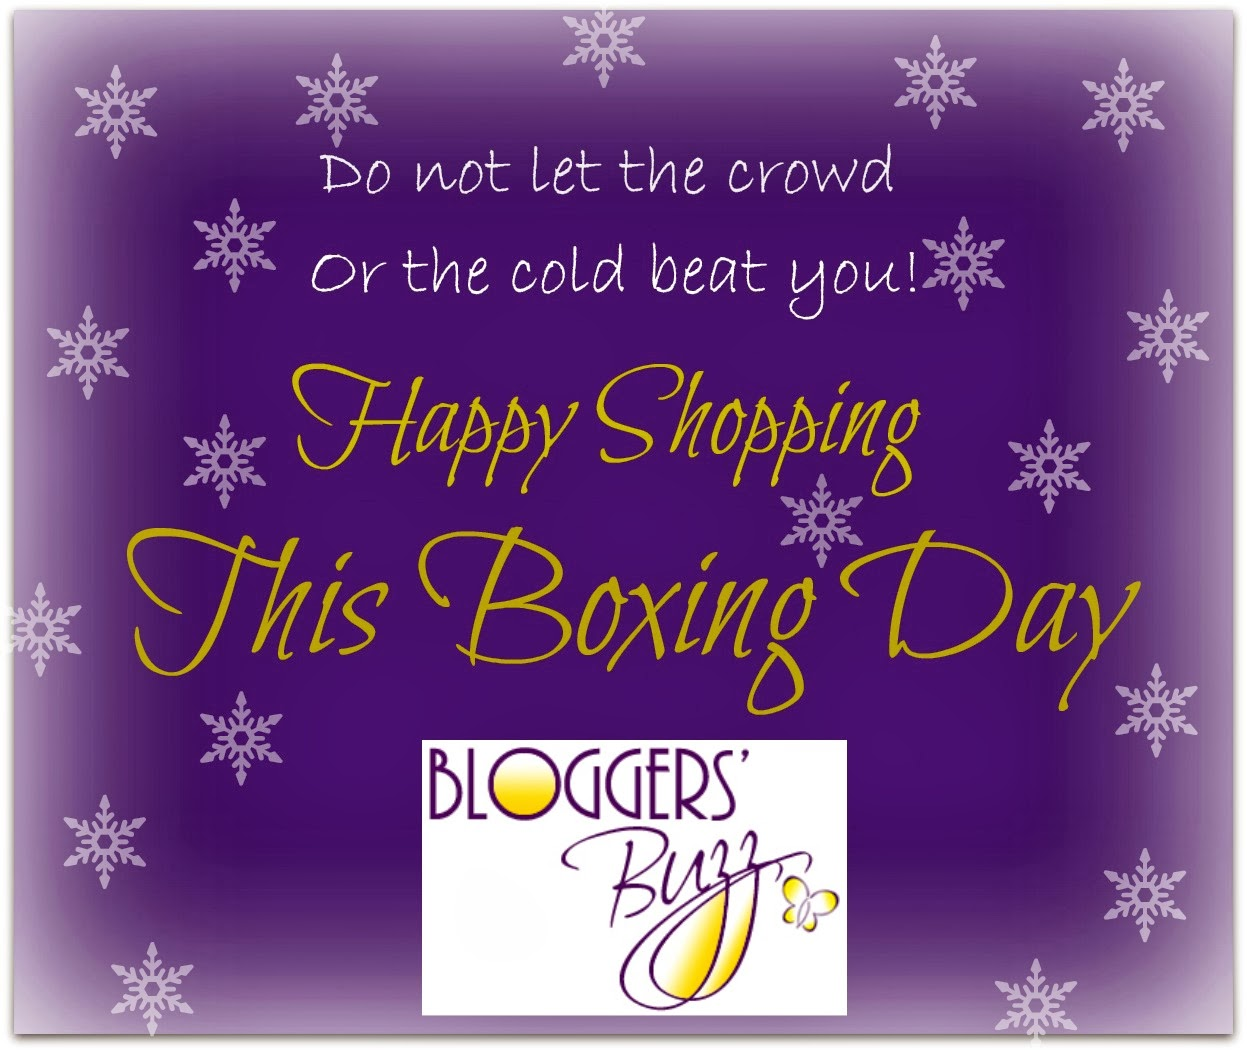 Good Night Greetings Quotes Wishes Hd Wallpapers Free Download Happy Boxing Day 2013 Wishes Hd Wallpapers Gifts And